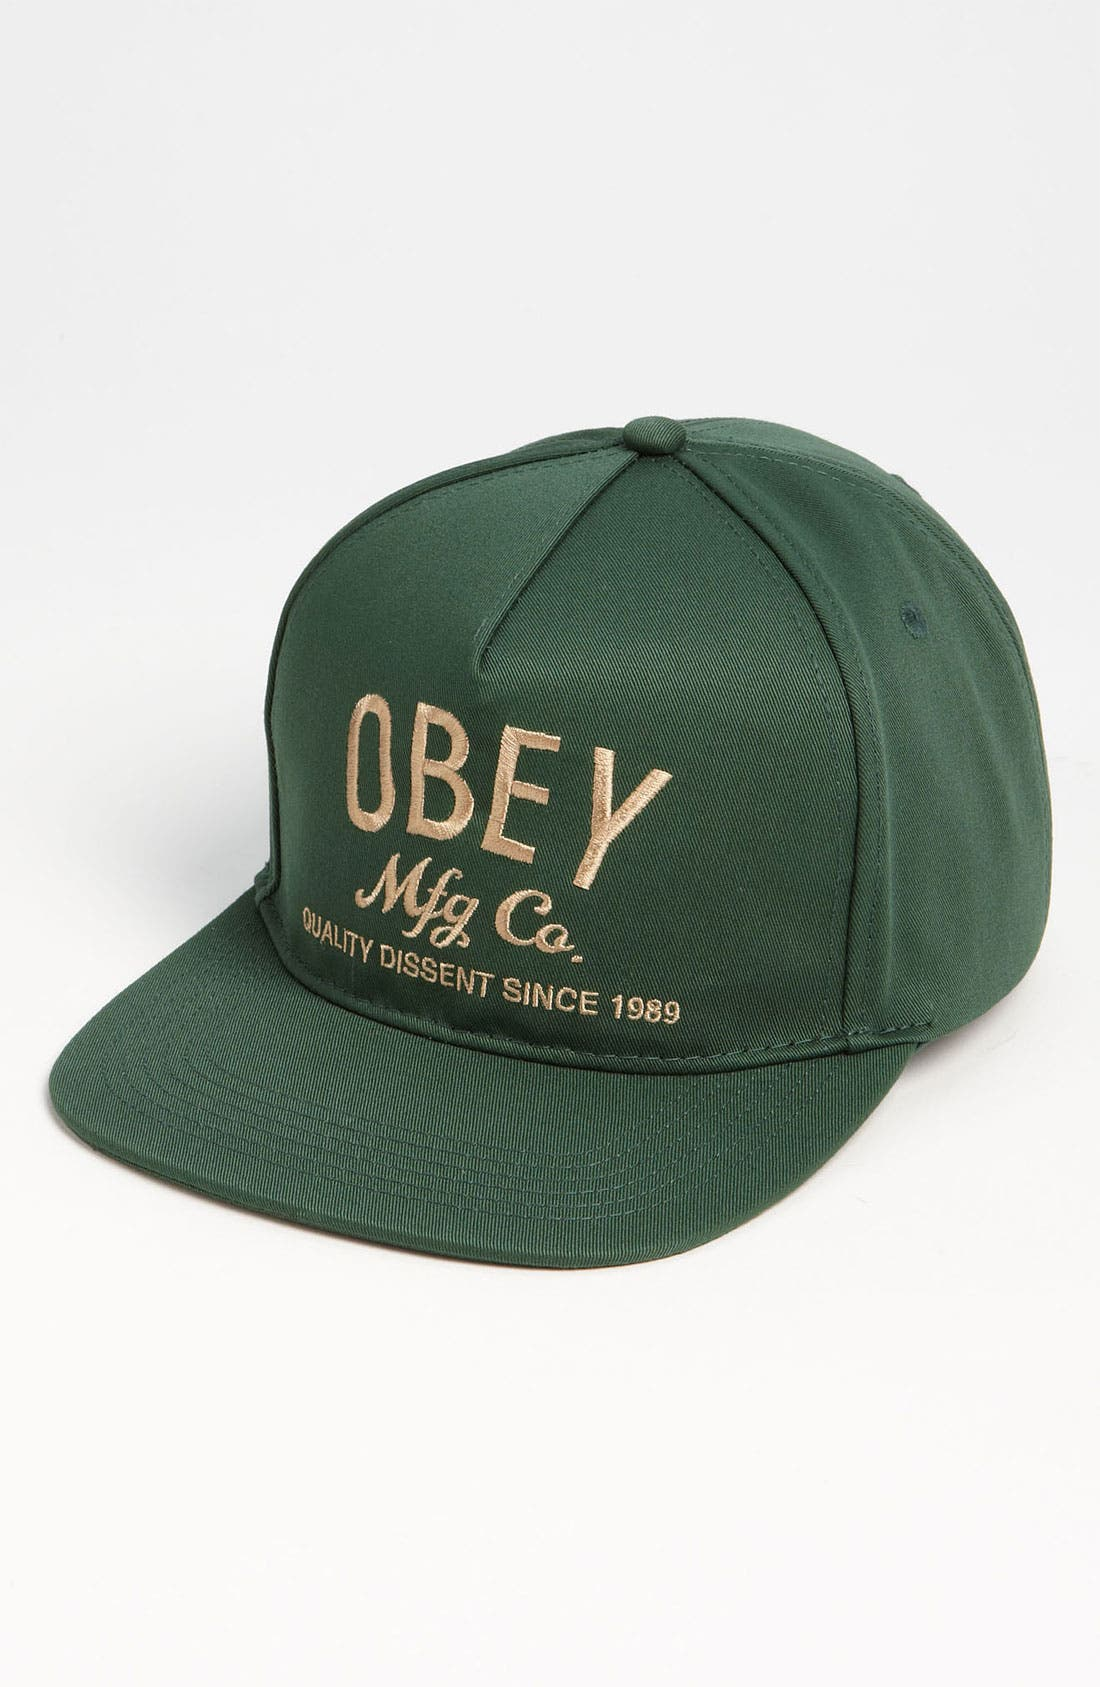 Main Image - Obey 'Mfg Co.' Snapback Cap